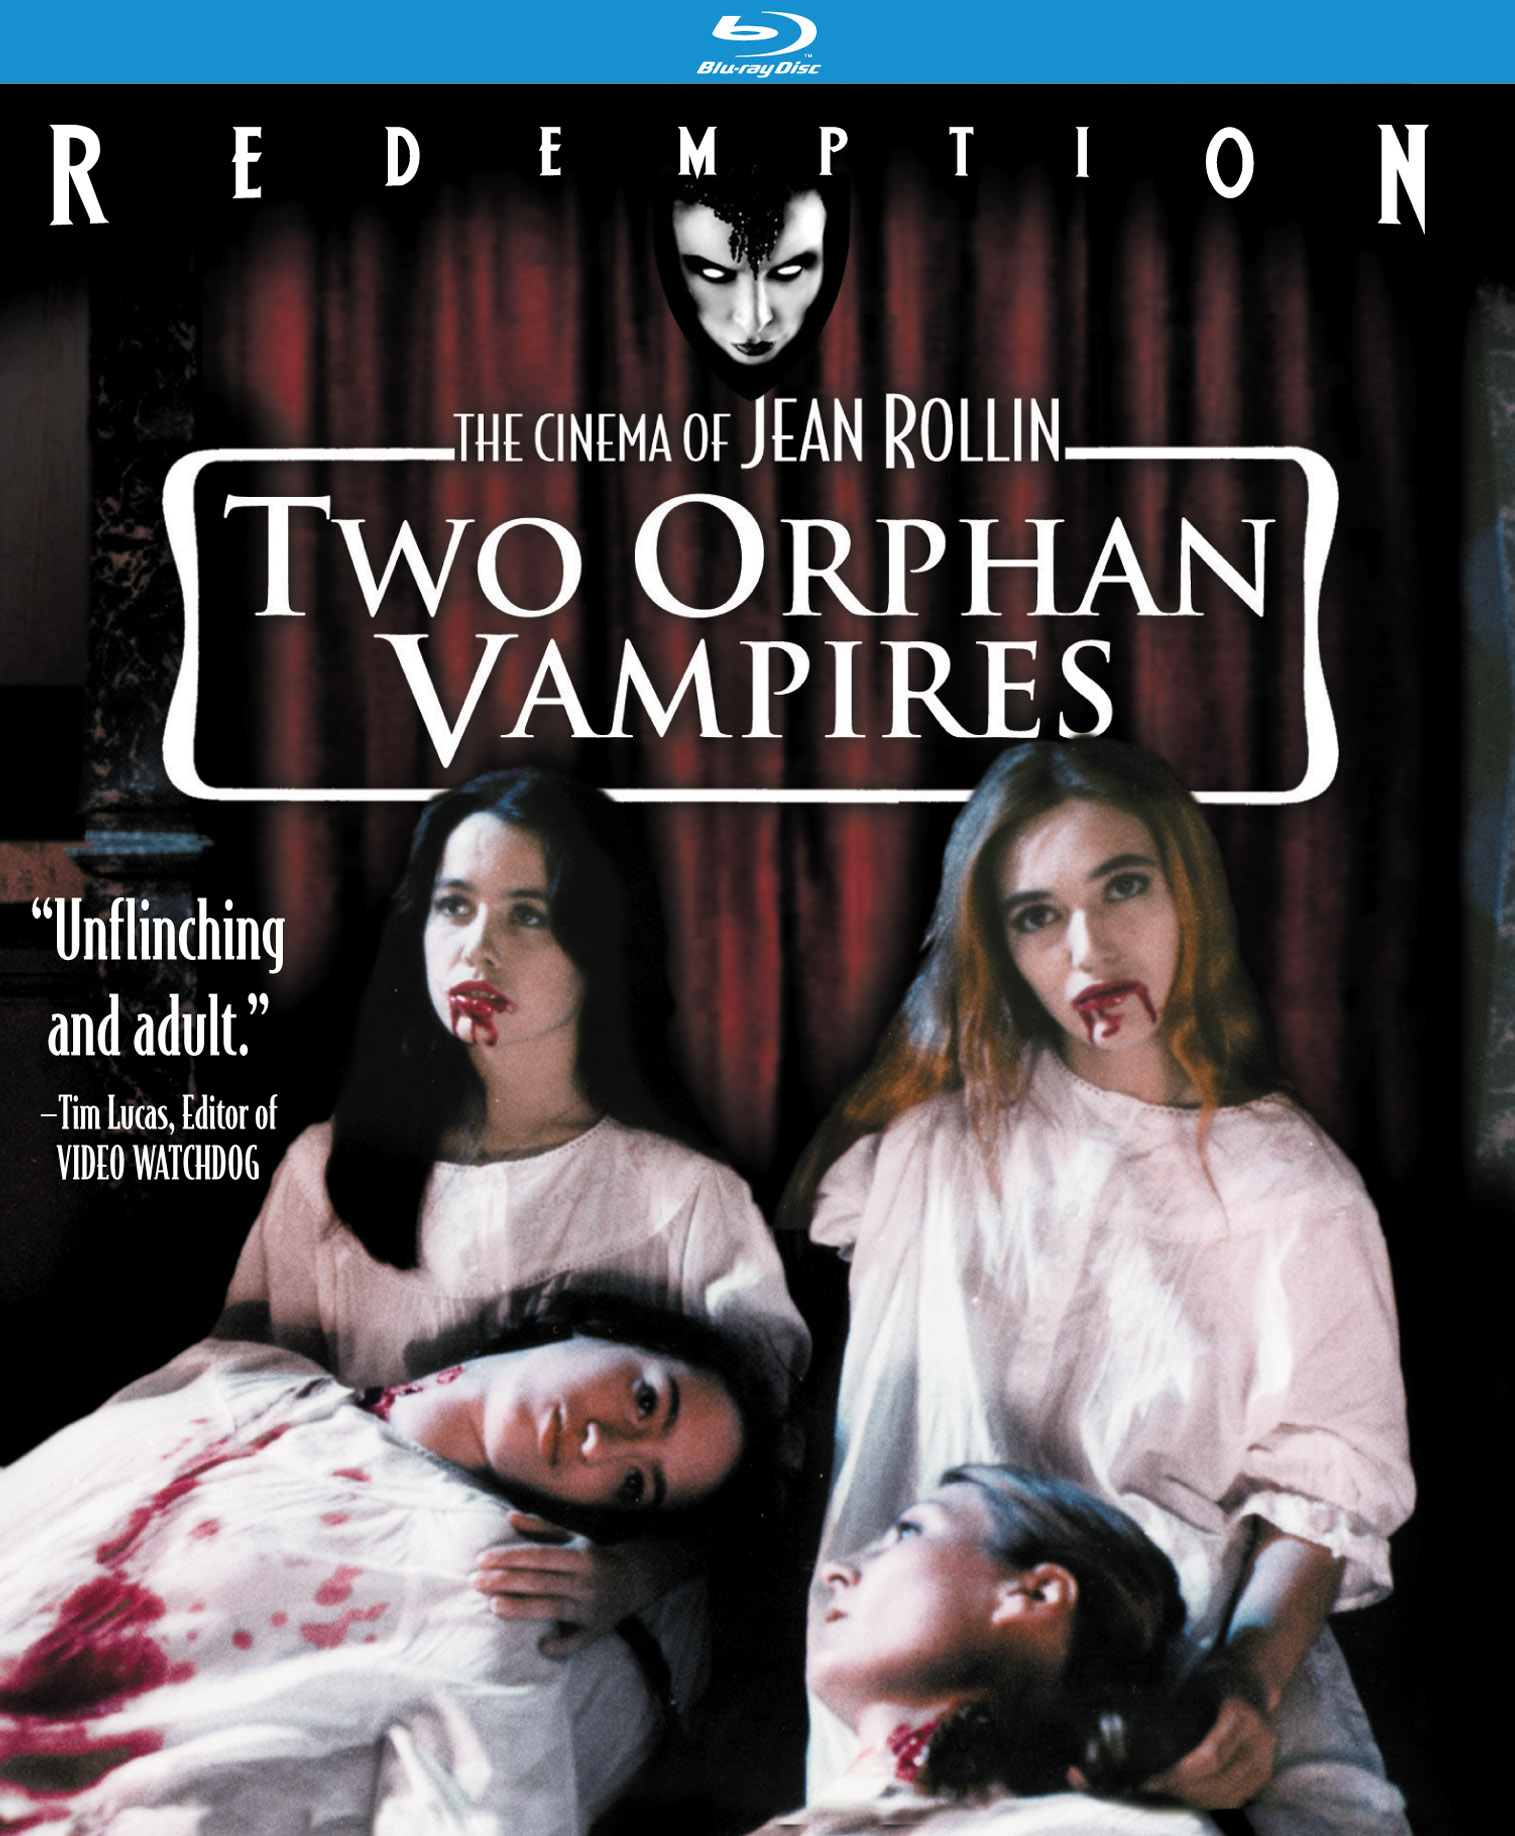 Two Orphan Vampires Details